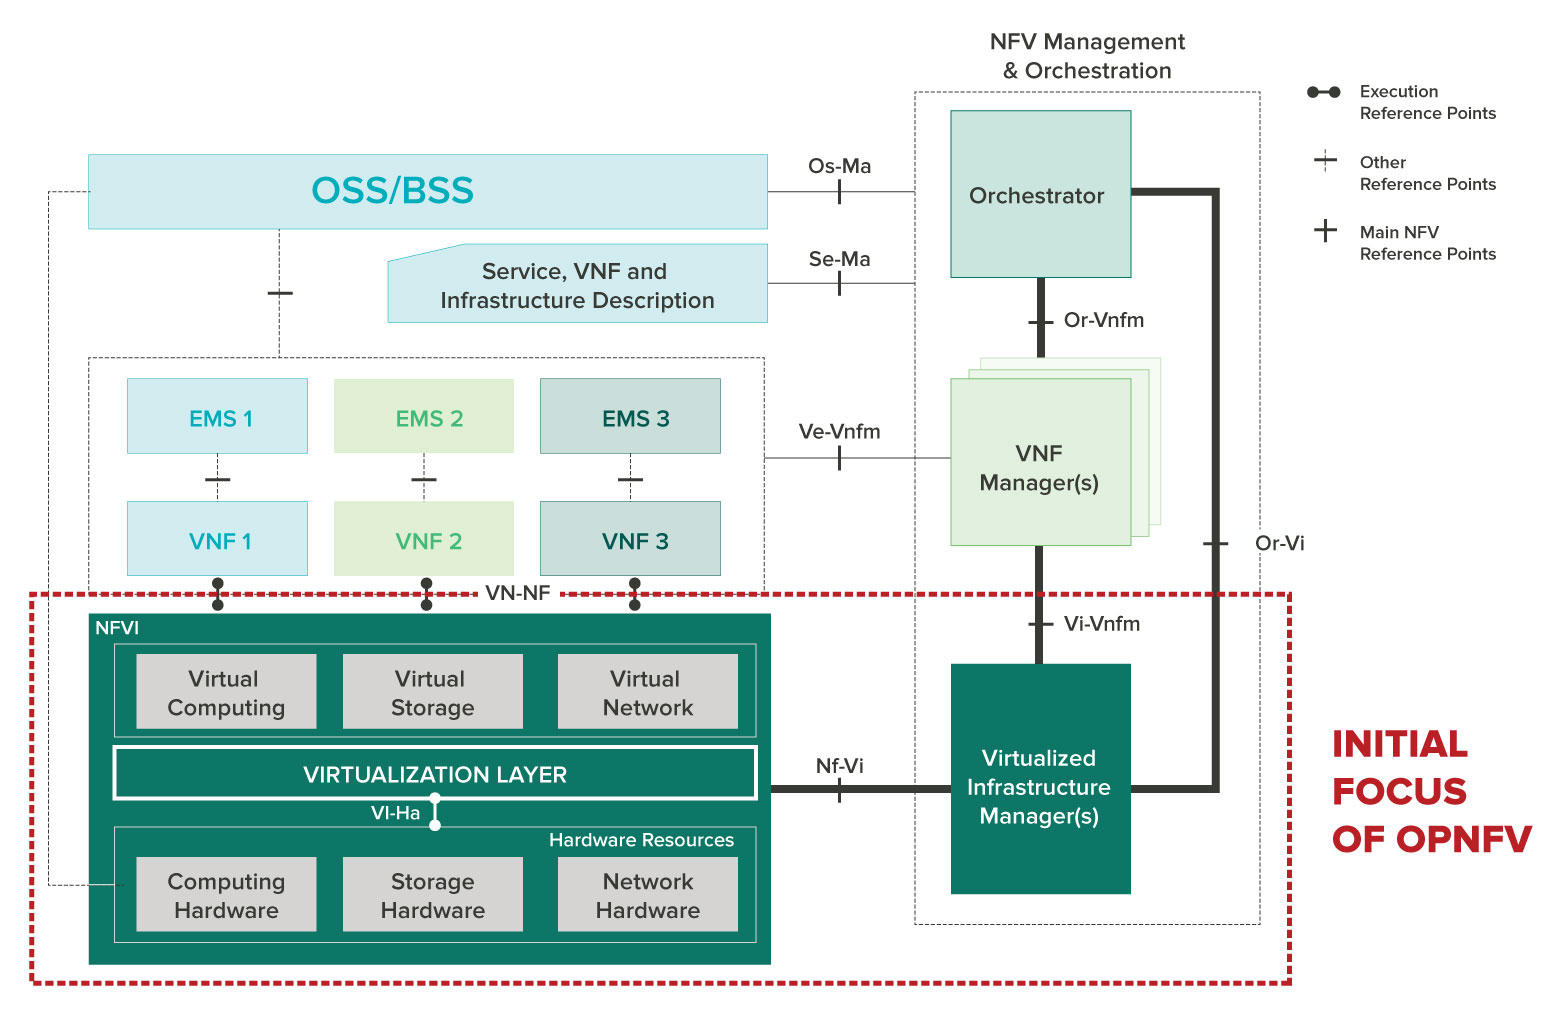 NFV Architecture Framework indicating OPNFV scope (in red)